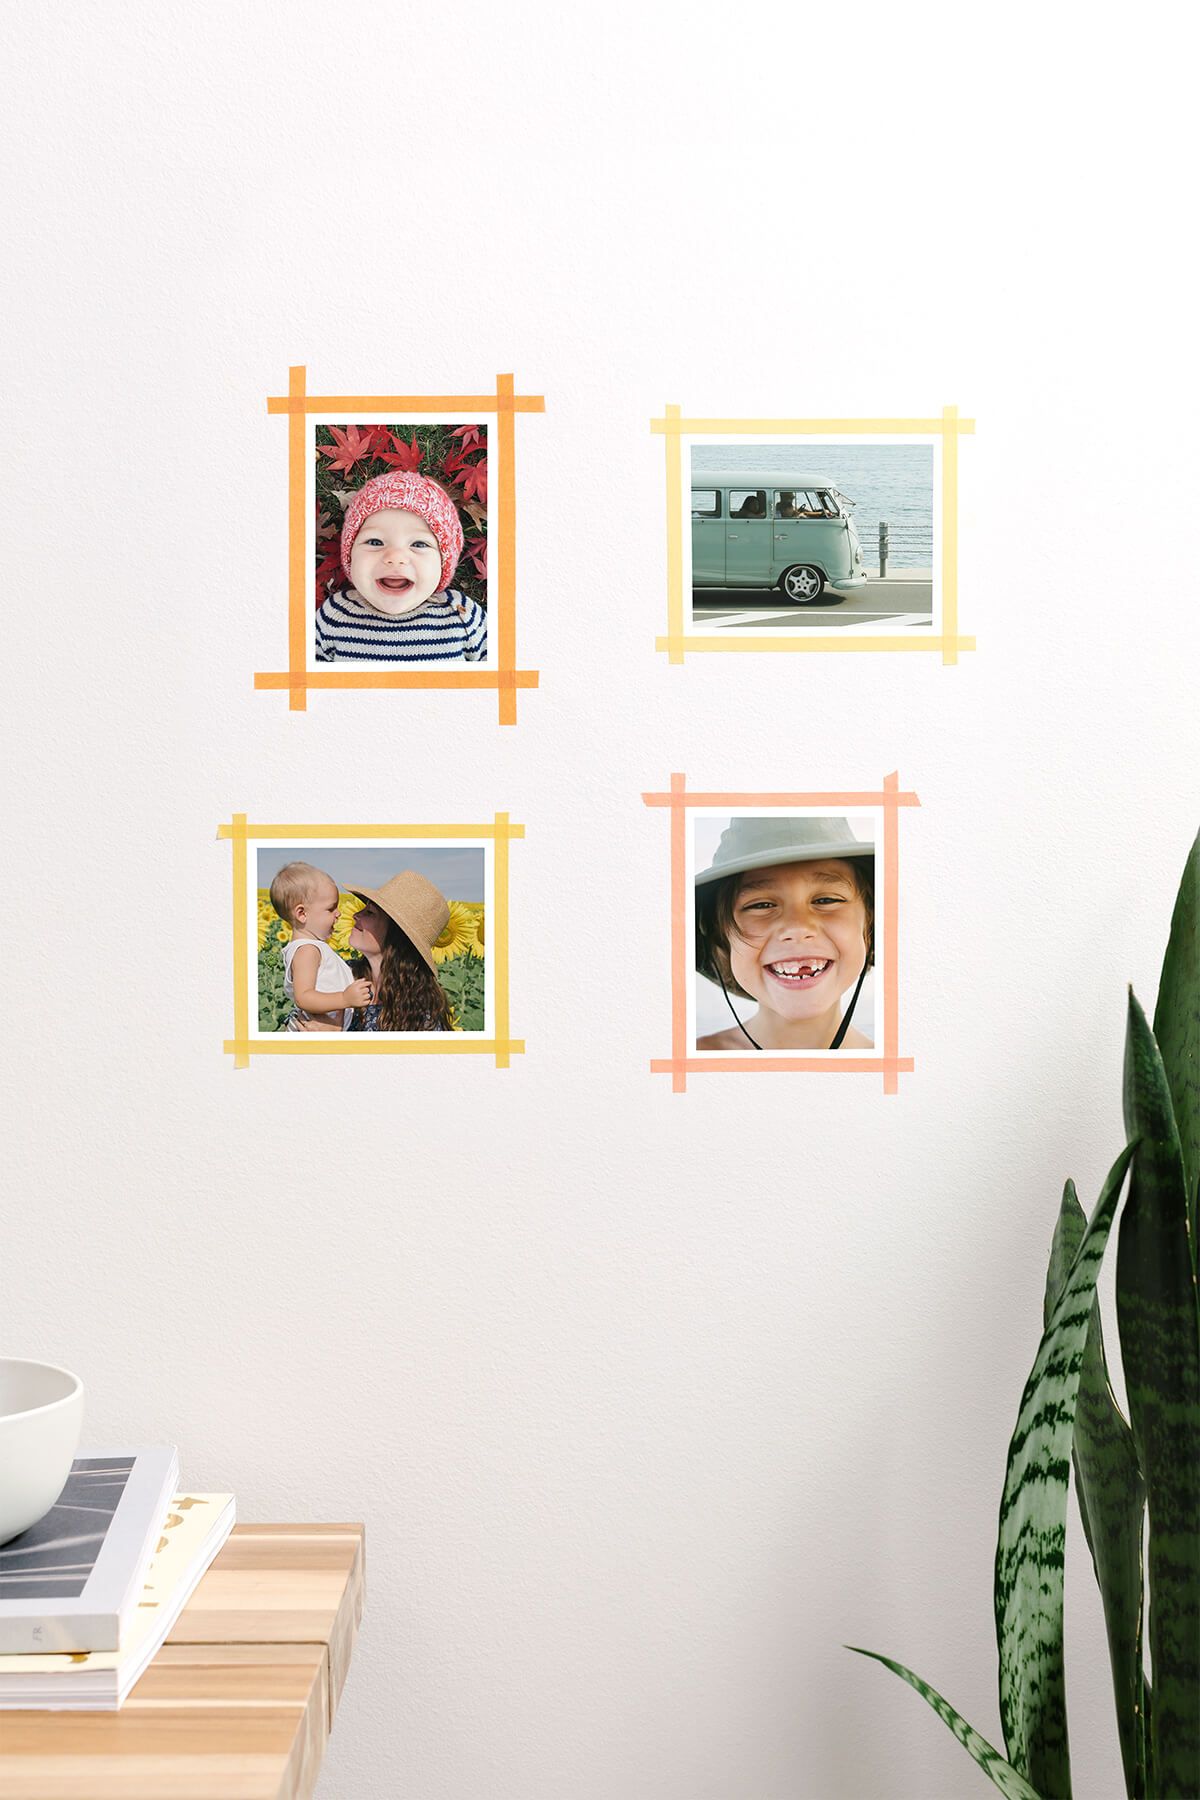 Washi tape framed around prints on wall